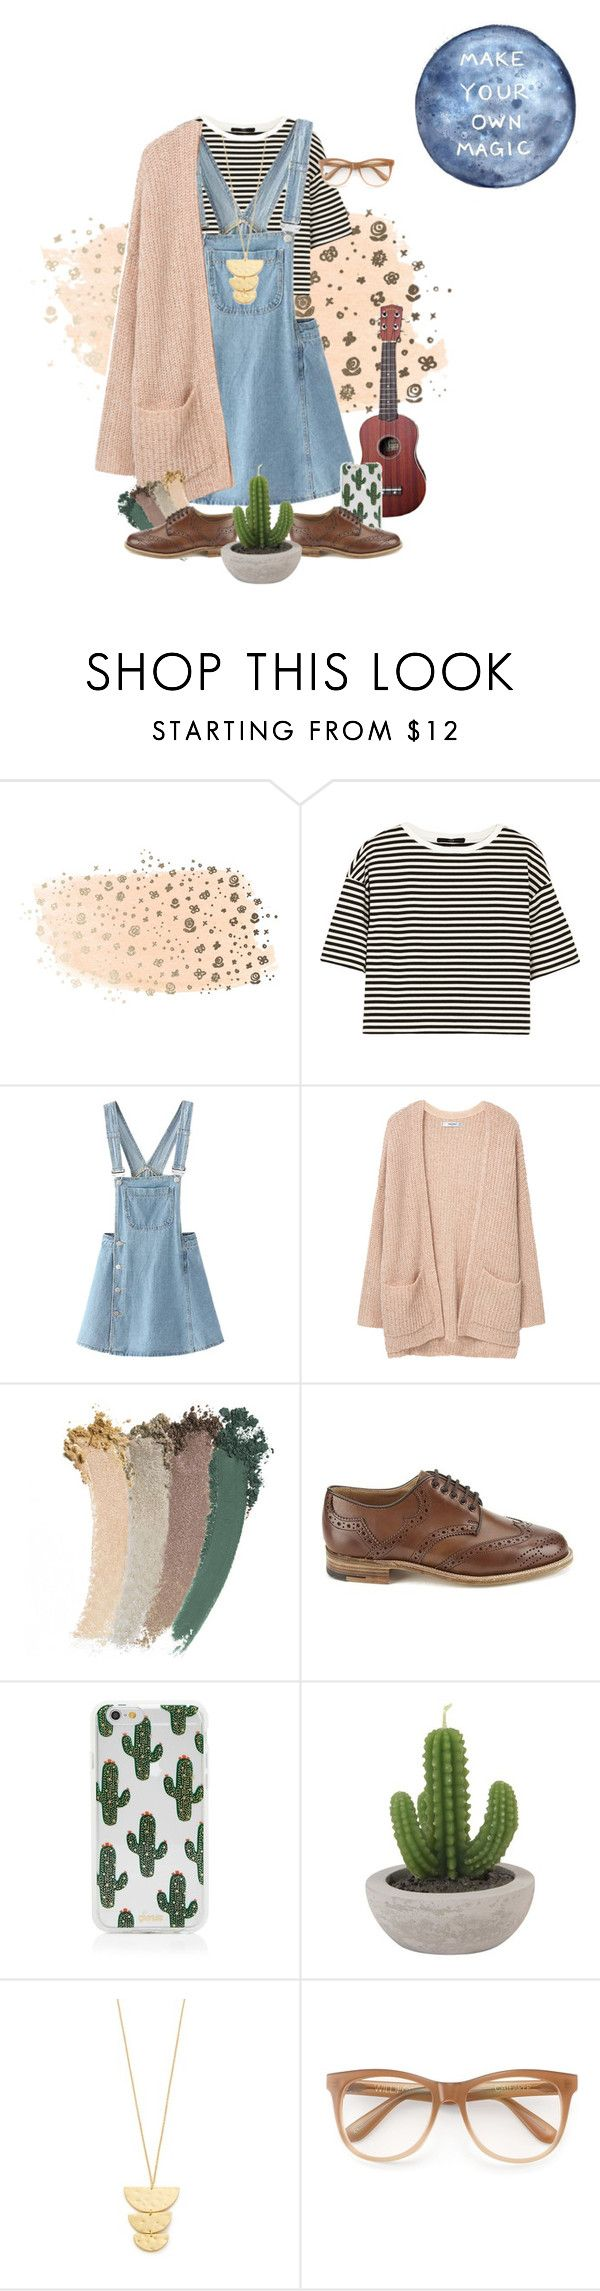 """""""Dodie Clark Inspired"""" by hairasmessyasmylife on Polyvore featuring TIBI, WithChic, MANGO, Gucci, Tricker's, Sonix, Gorjana and Wildfox"""